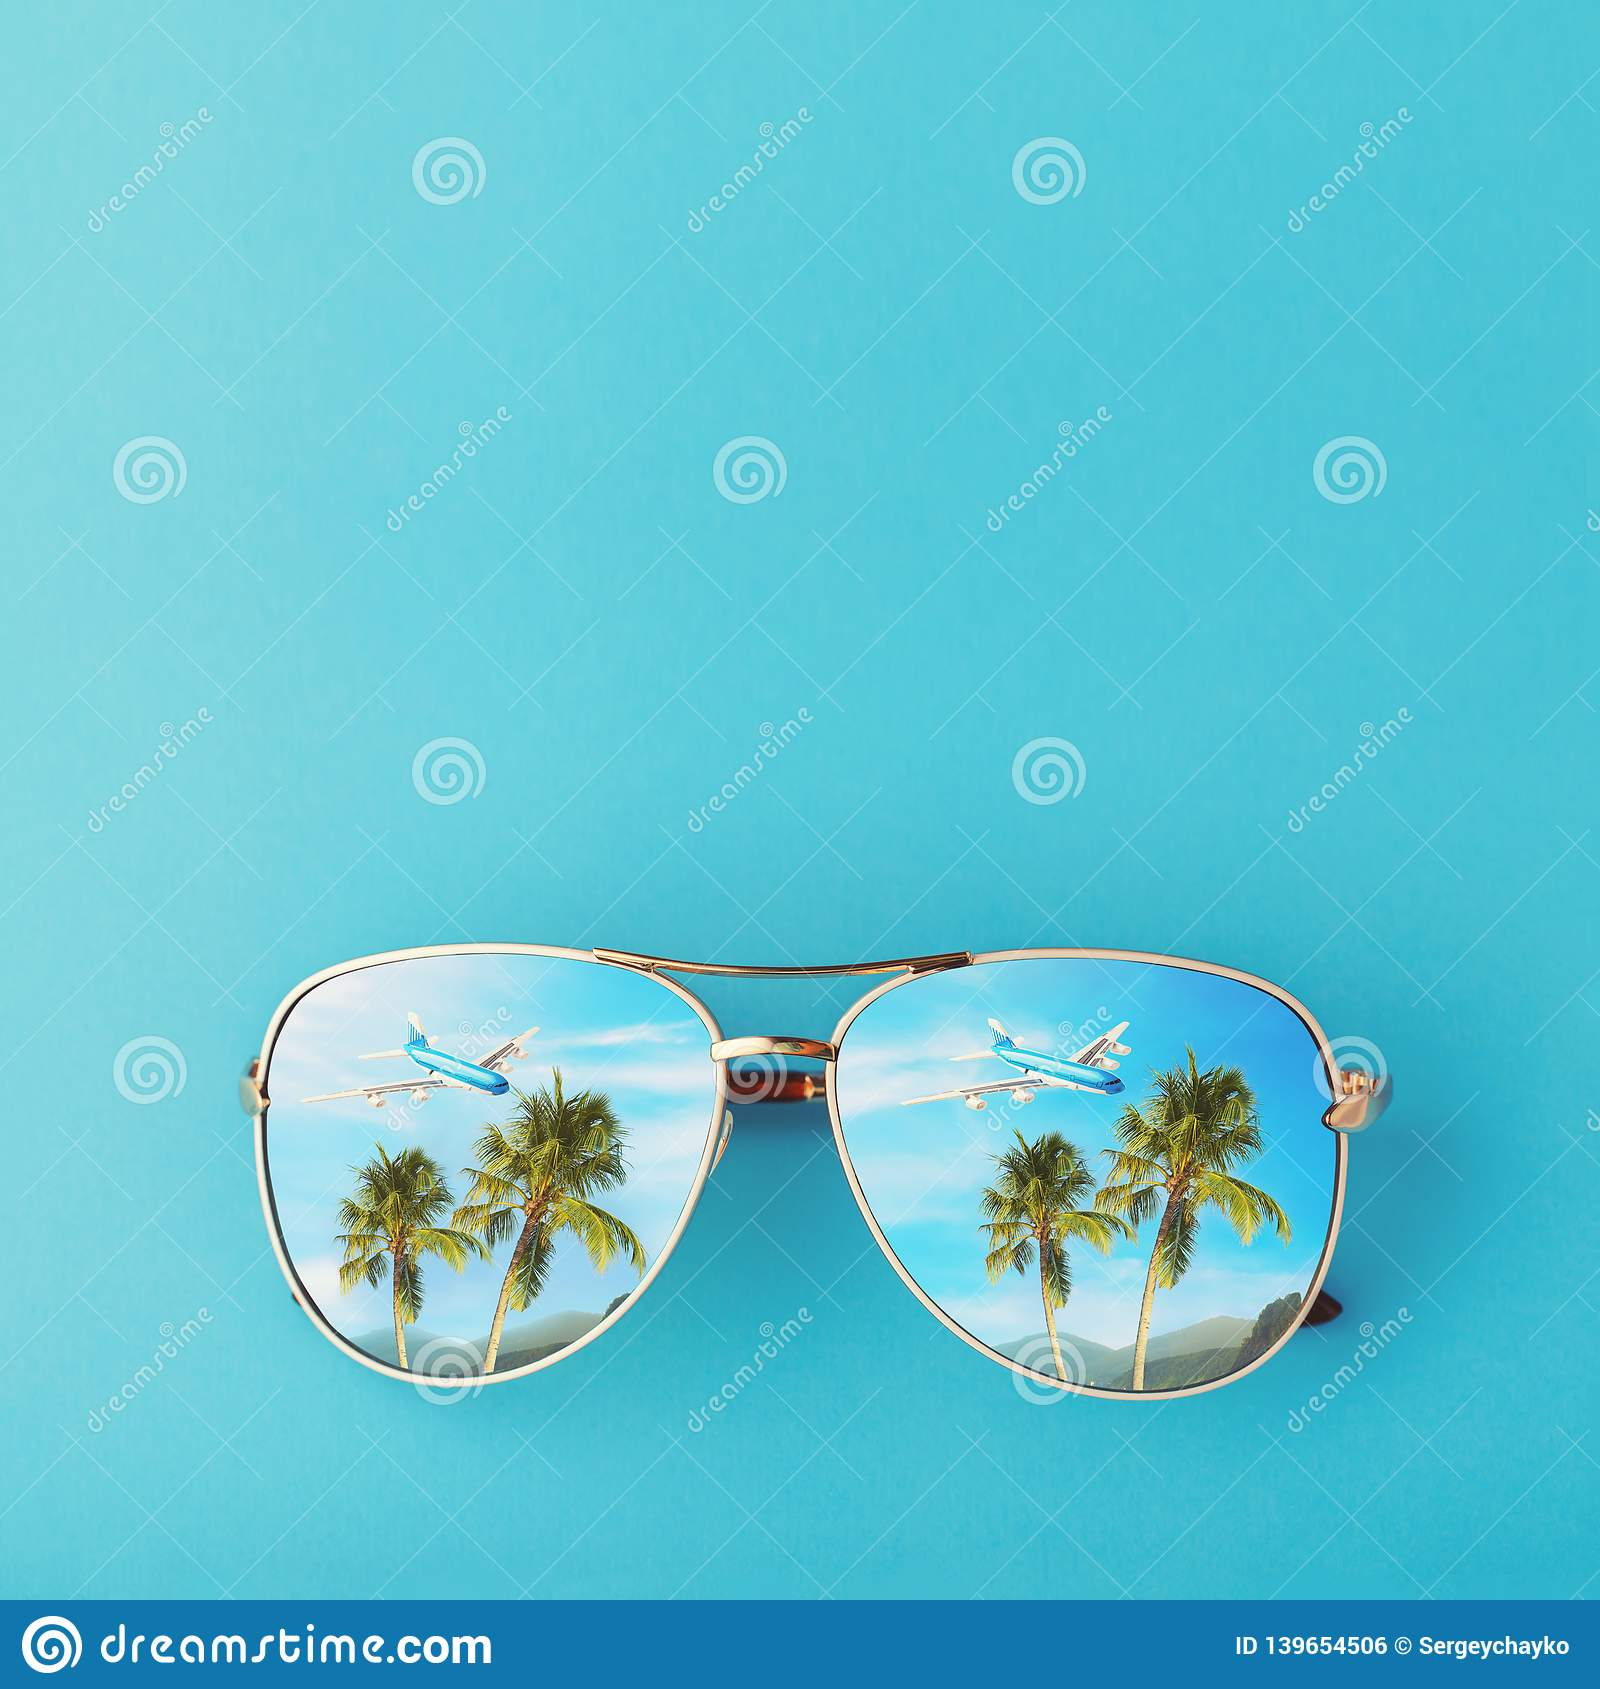 Sunglasses with palm trees, a plane and mountains reflected in them. Concept on the theme of vacation and travel with copy space